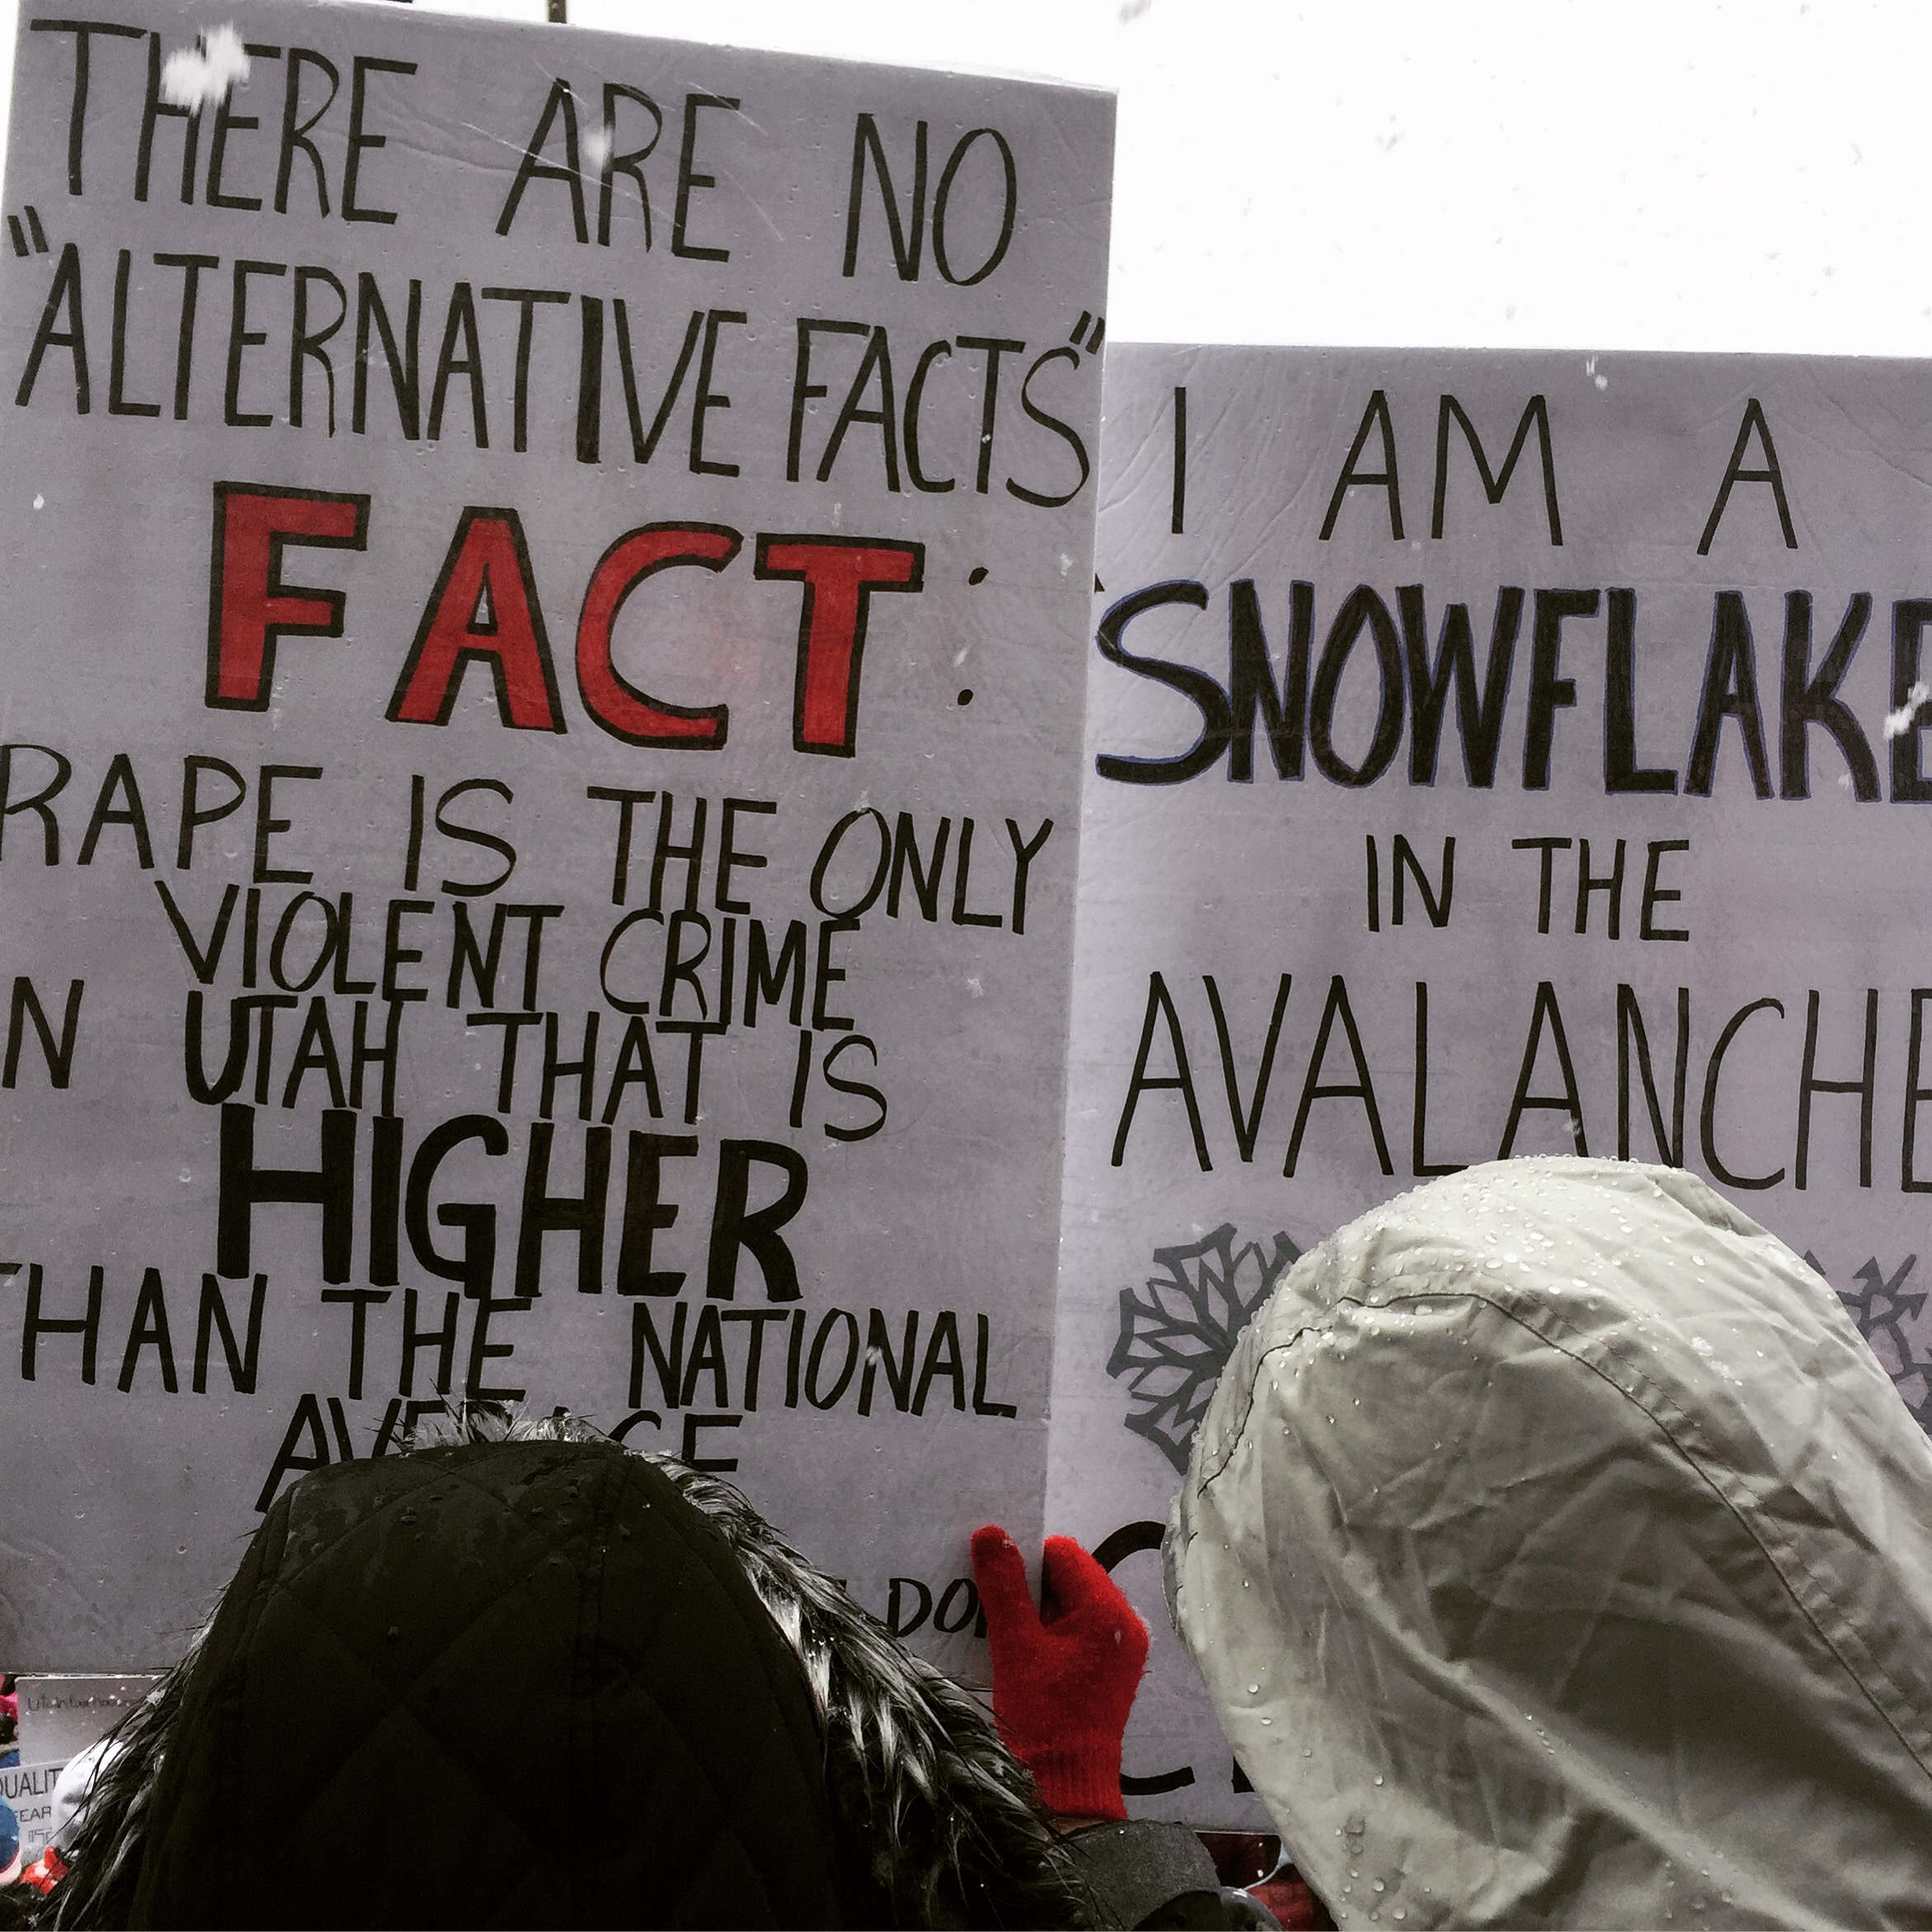 there are no #alternativefacts